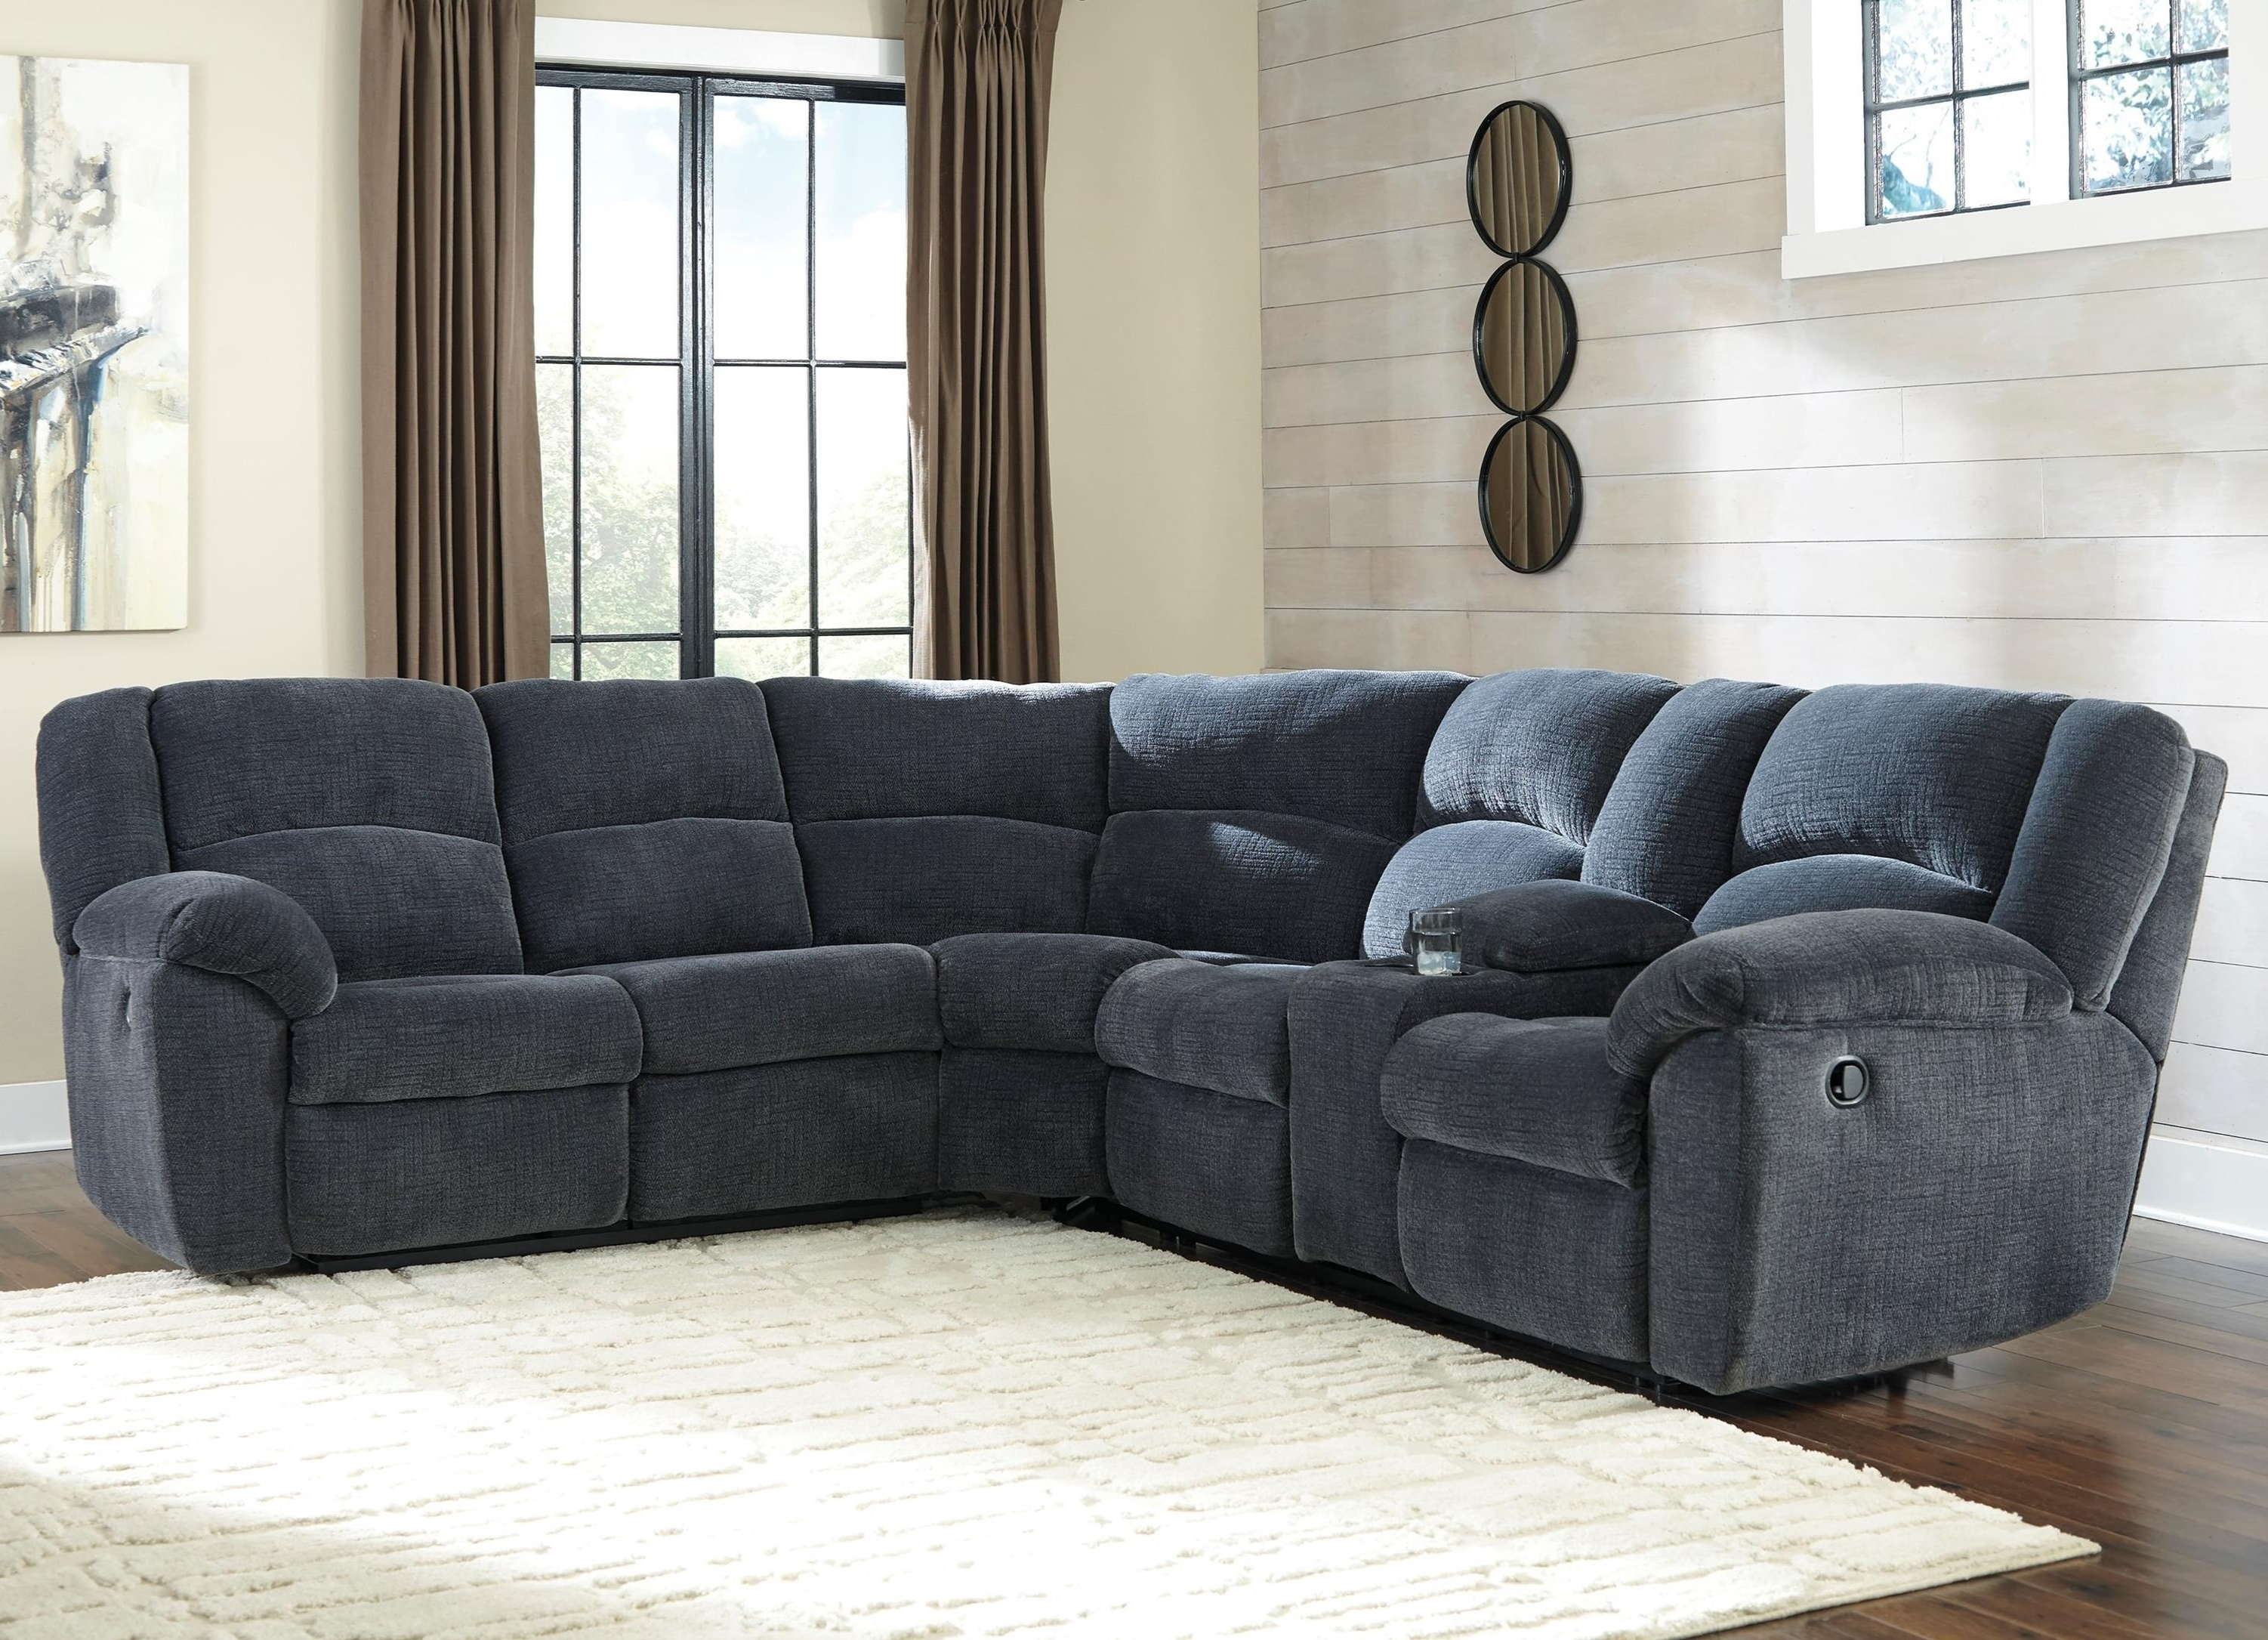 Reclining Sectional Sofas With Fashionable Benchcraft Timpson Reclining Sectional With Storage Console (View 16 of 20)